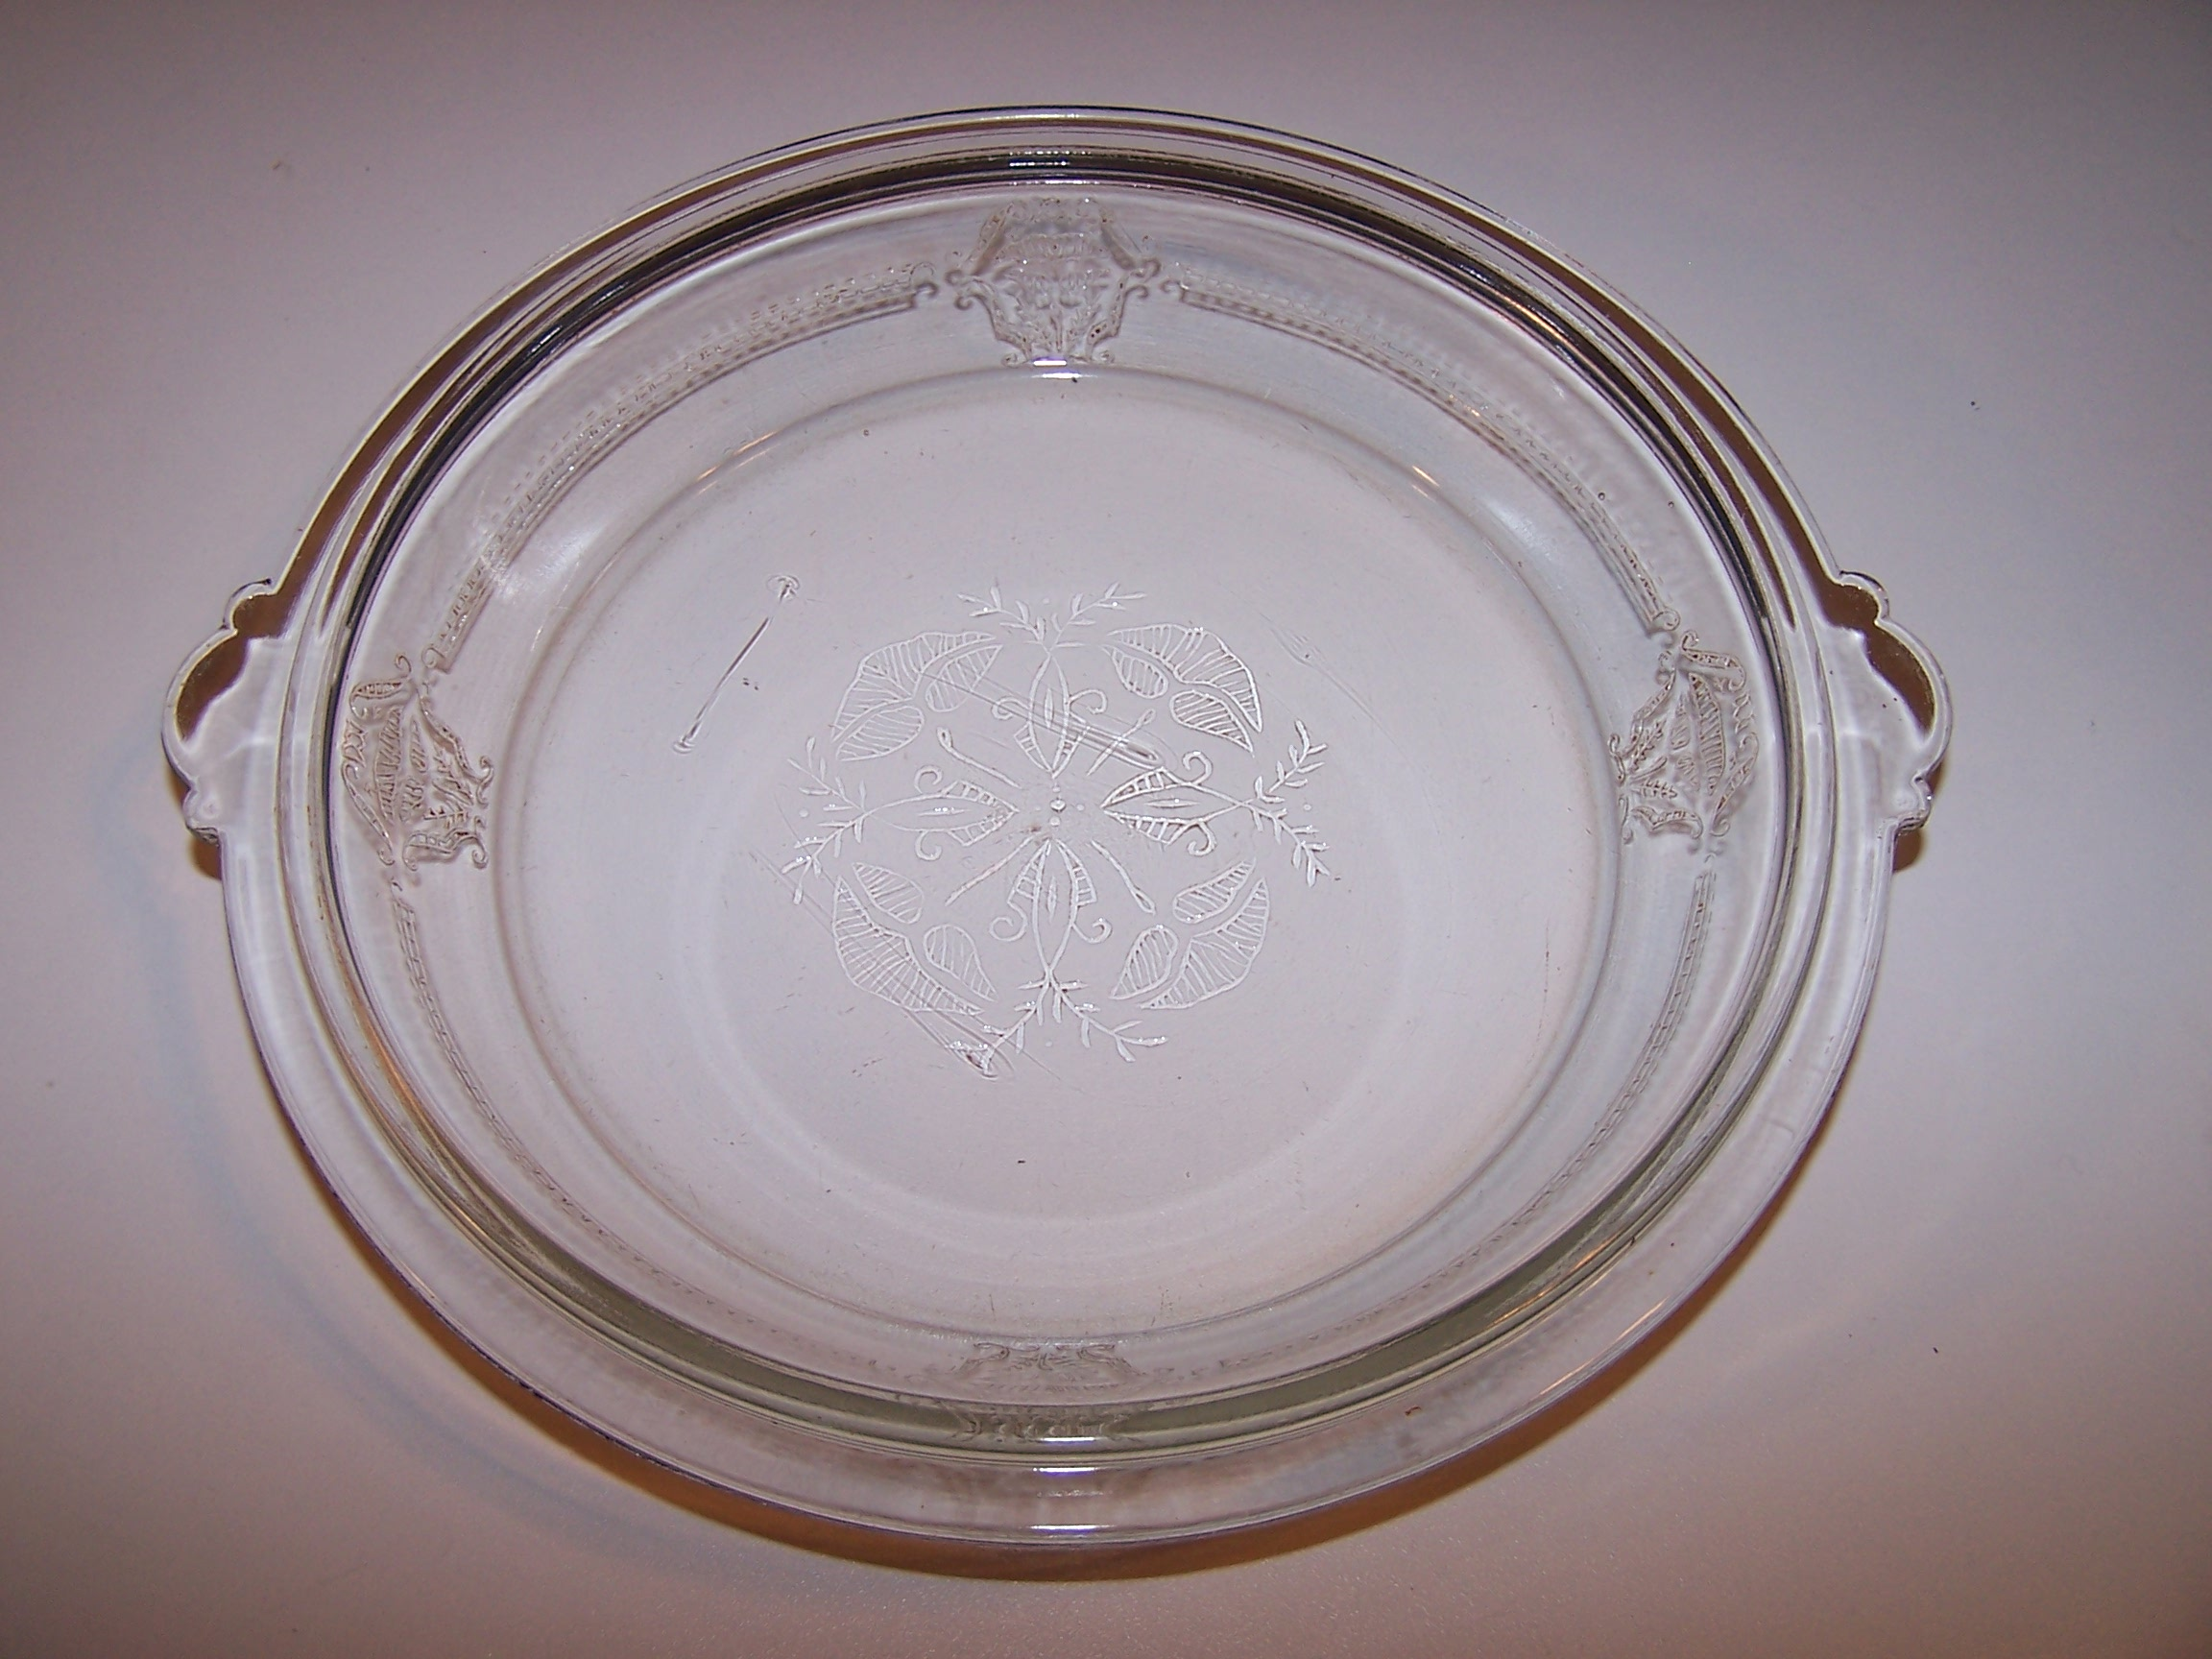 Image 15 of Glasbake Bake Set, Embossed, Elegant, 1911